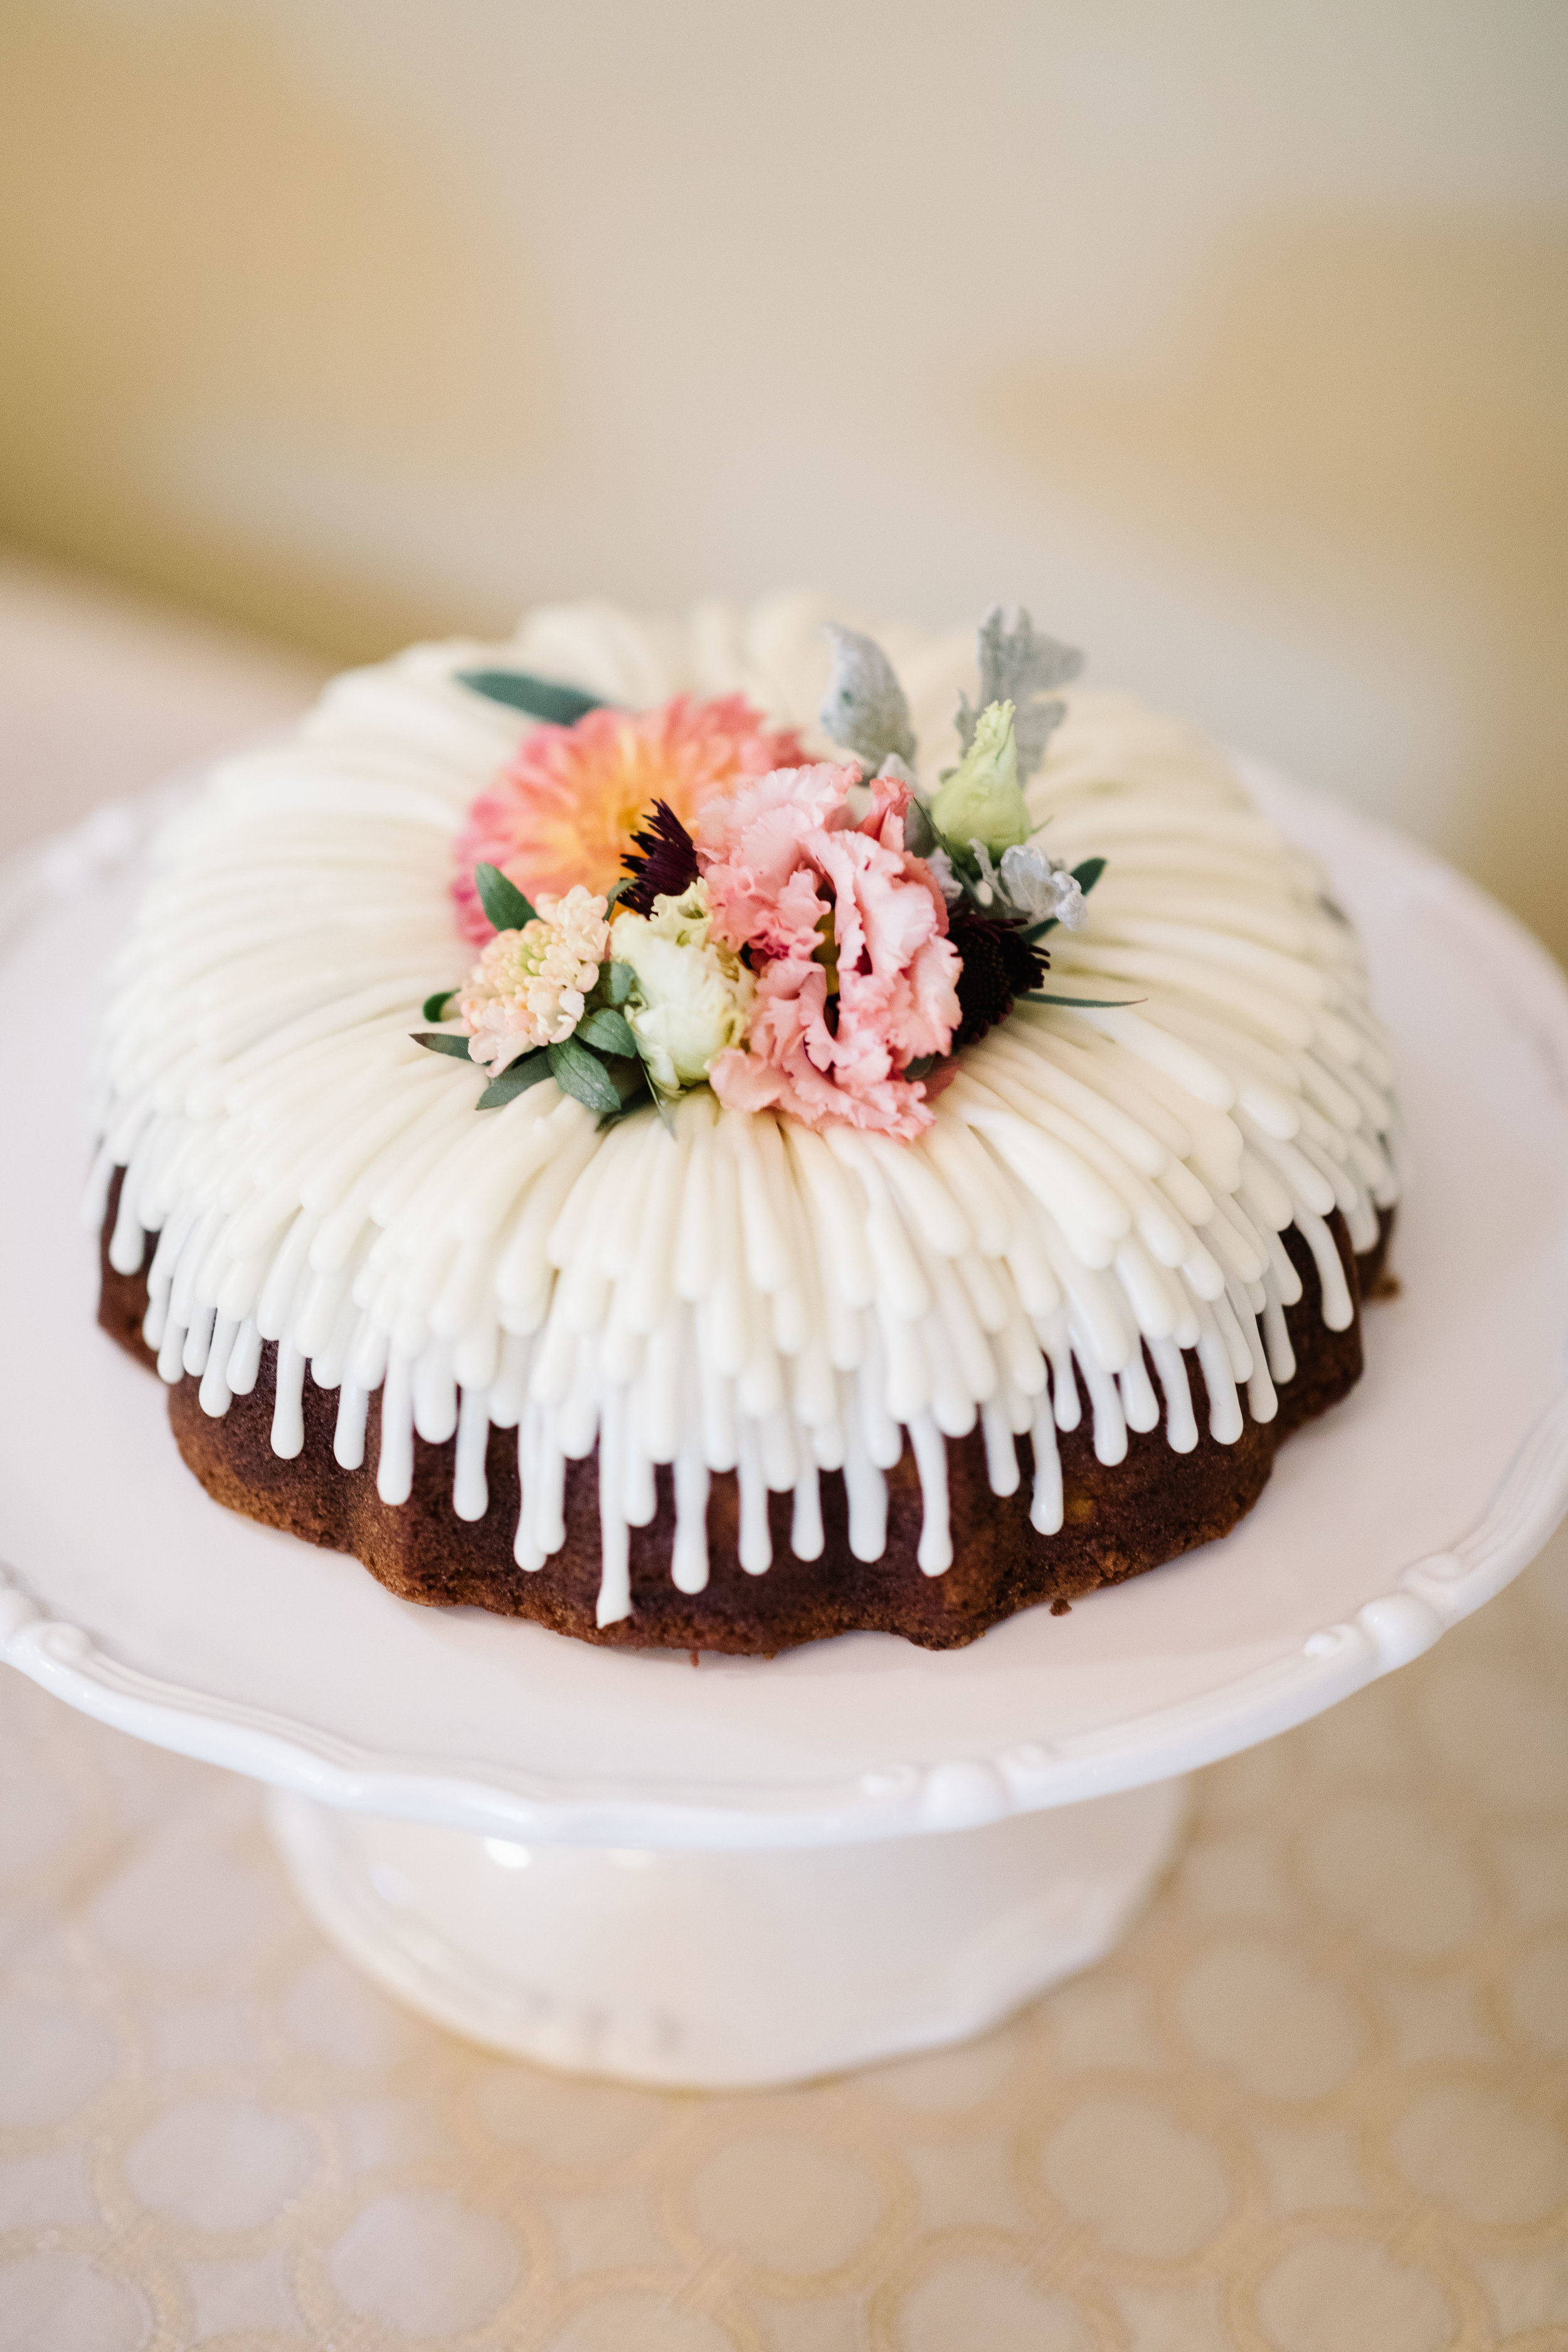 Special occasions cake decor.jpg